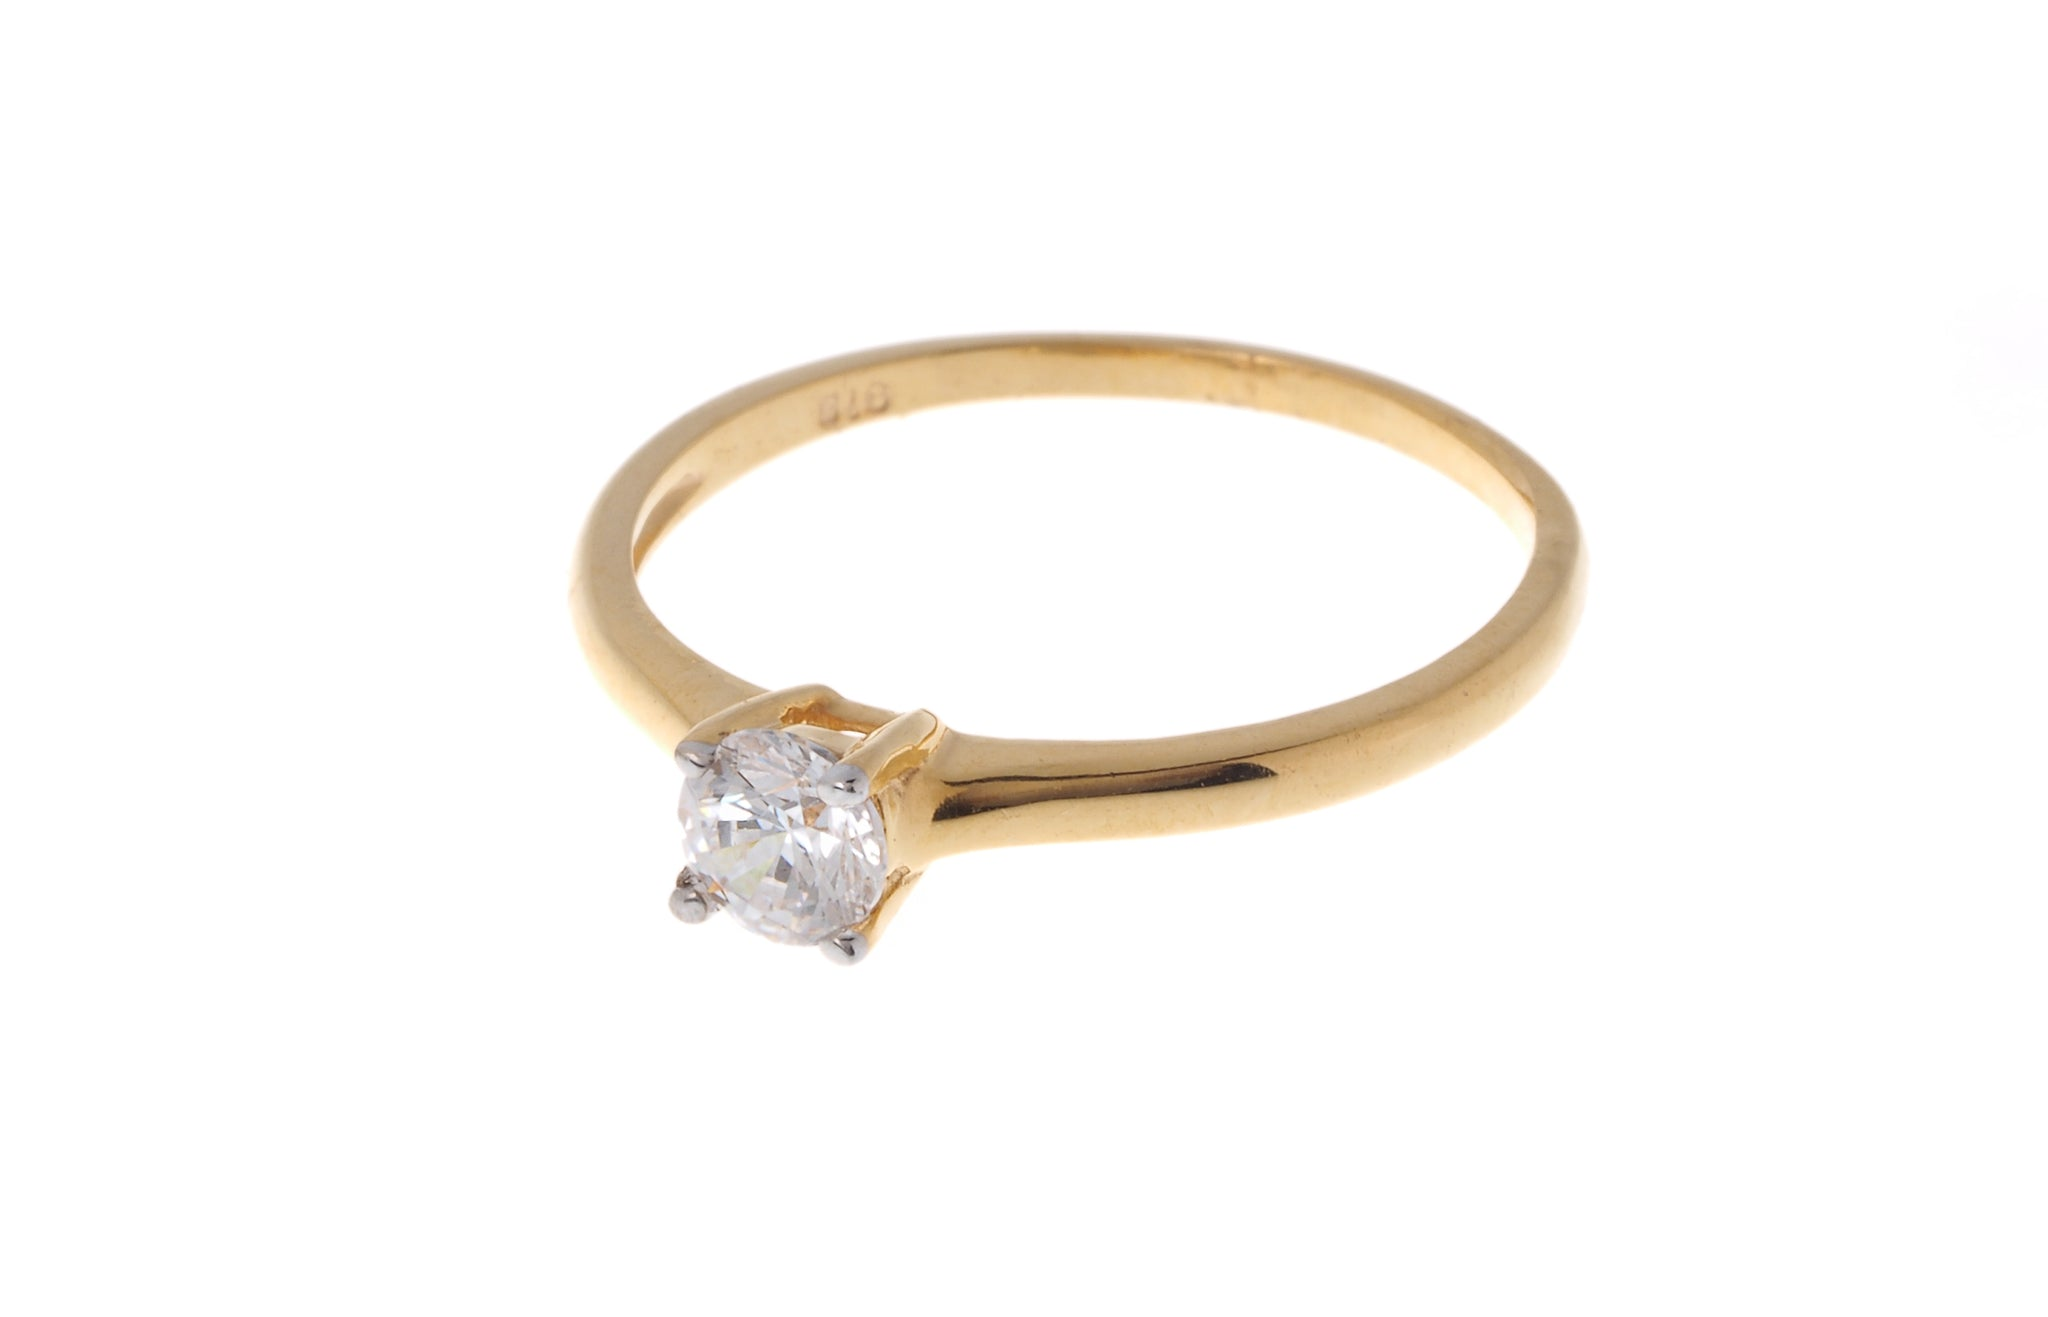 22ct Gold Cubic Zirconia Engagement Ring (VLR002)